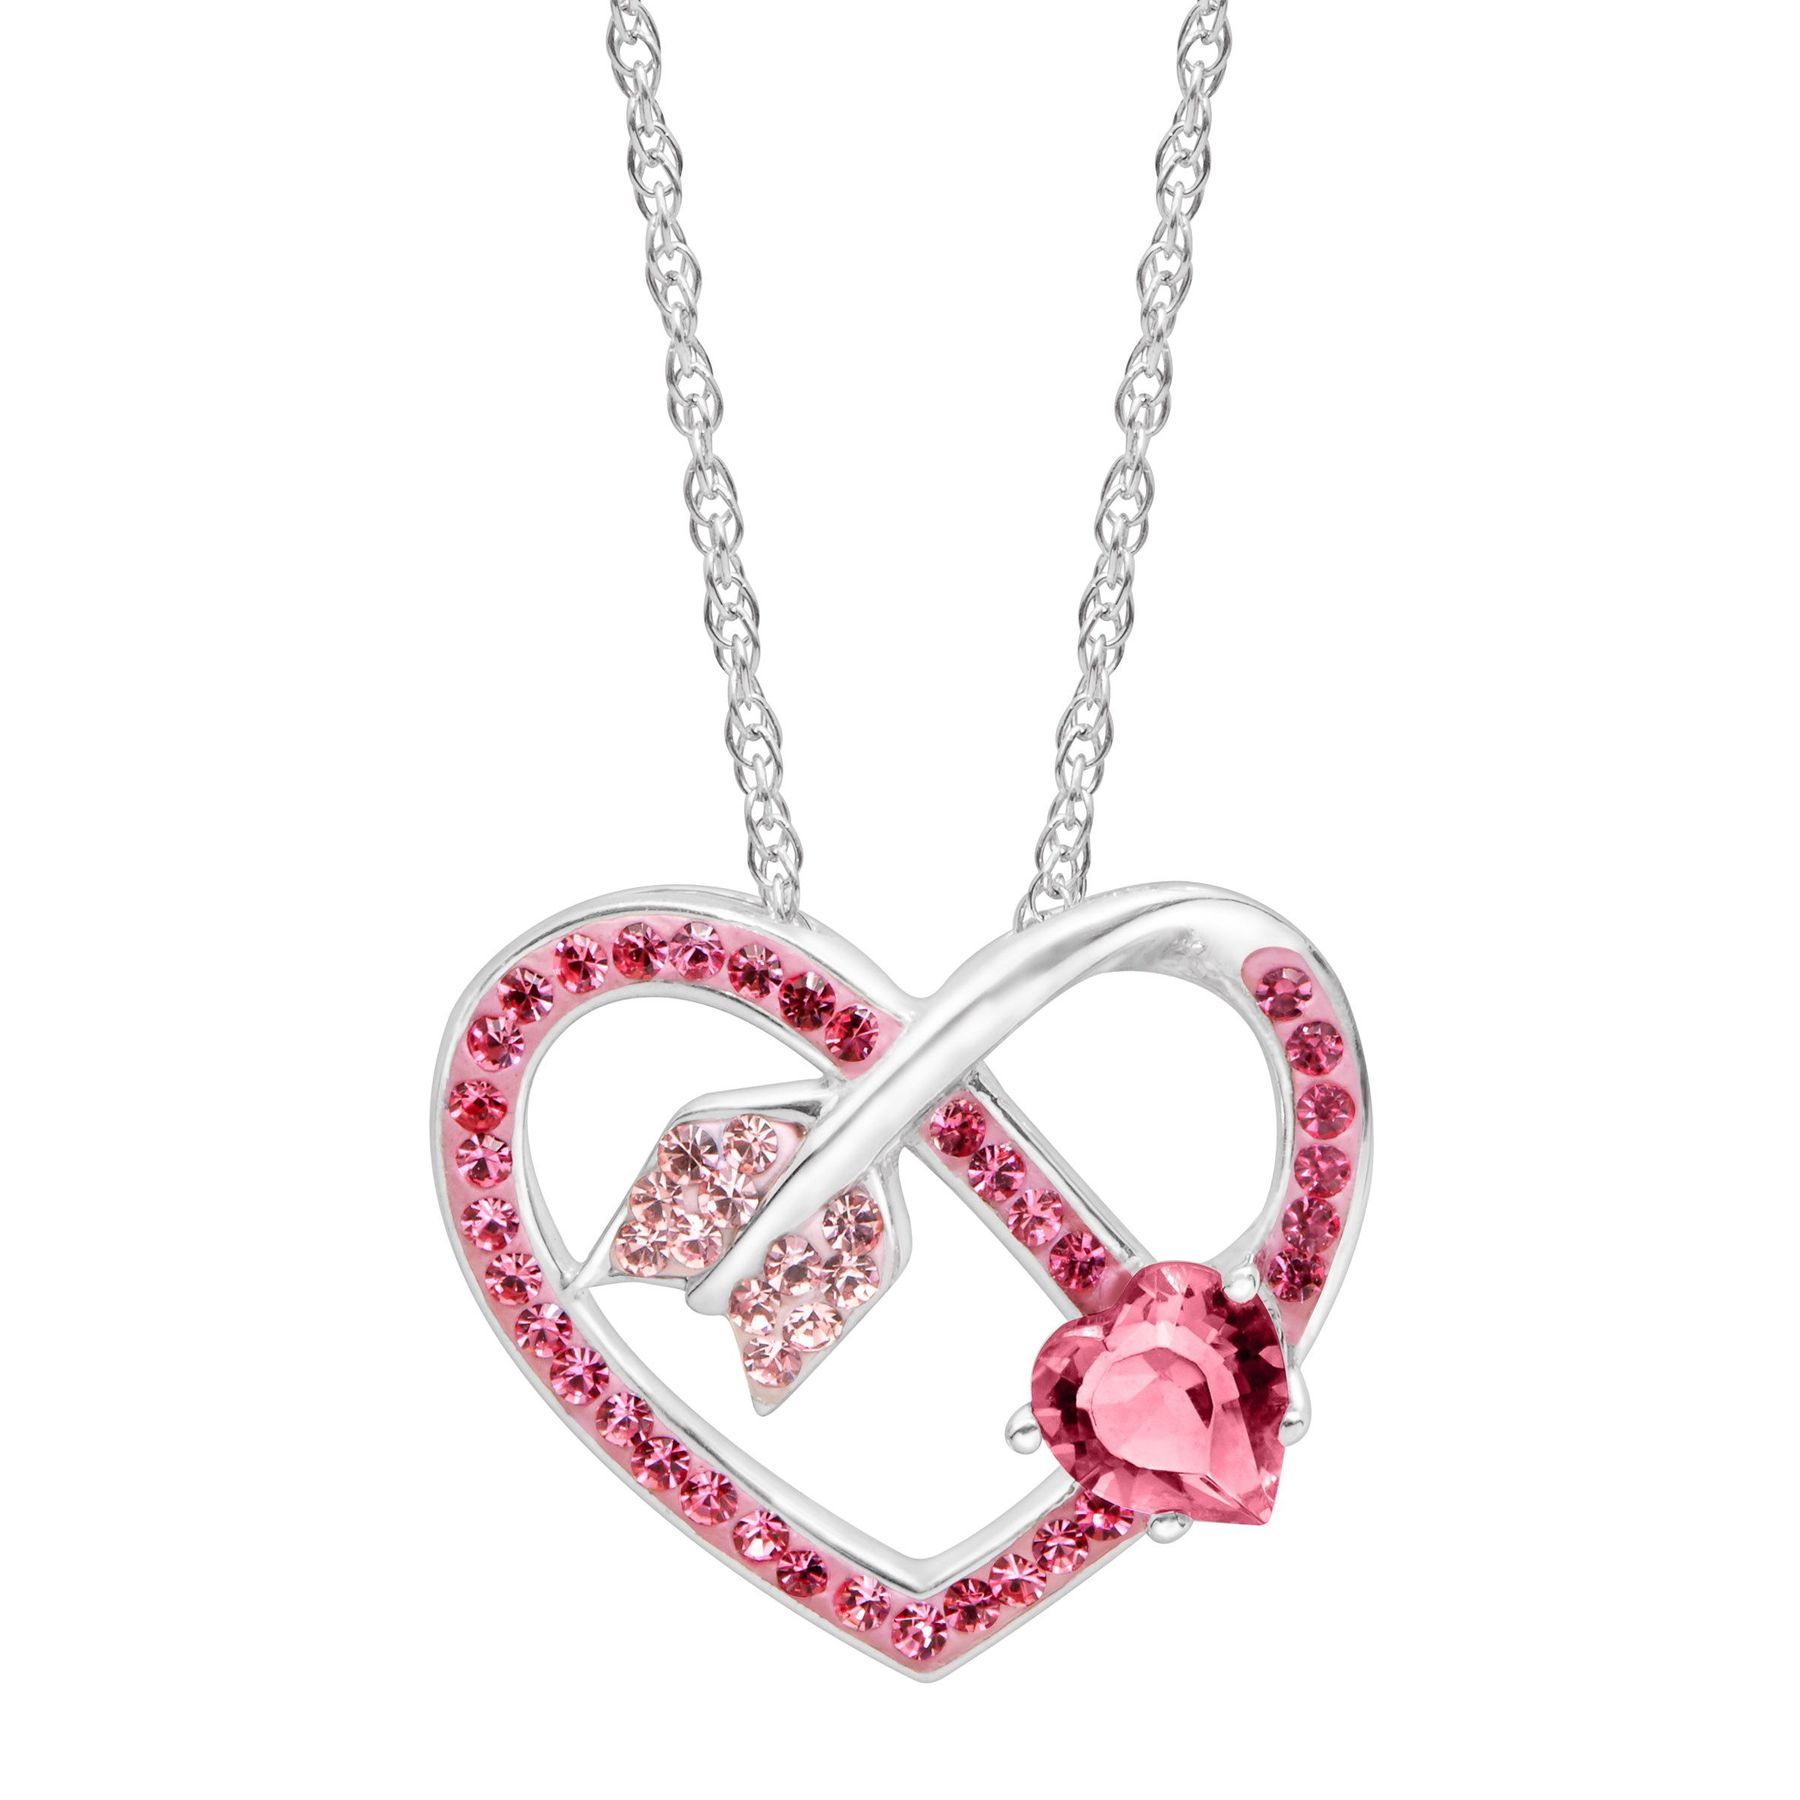 96837ab2ae6b4f Crystaluxe Arrow Heart Pendant with Pink   Rose Swarovski Crystals in  Sterling Silver